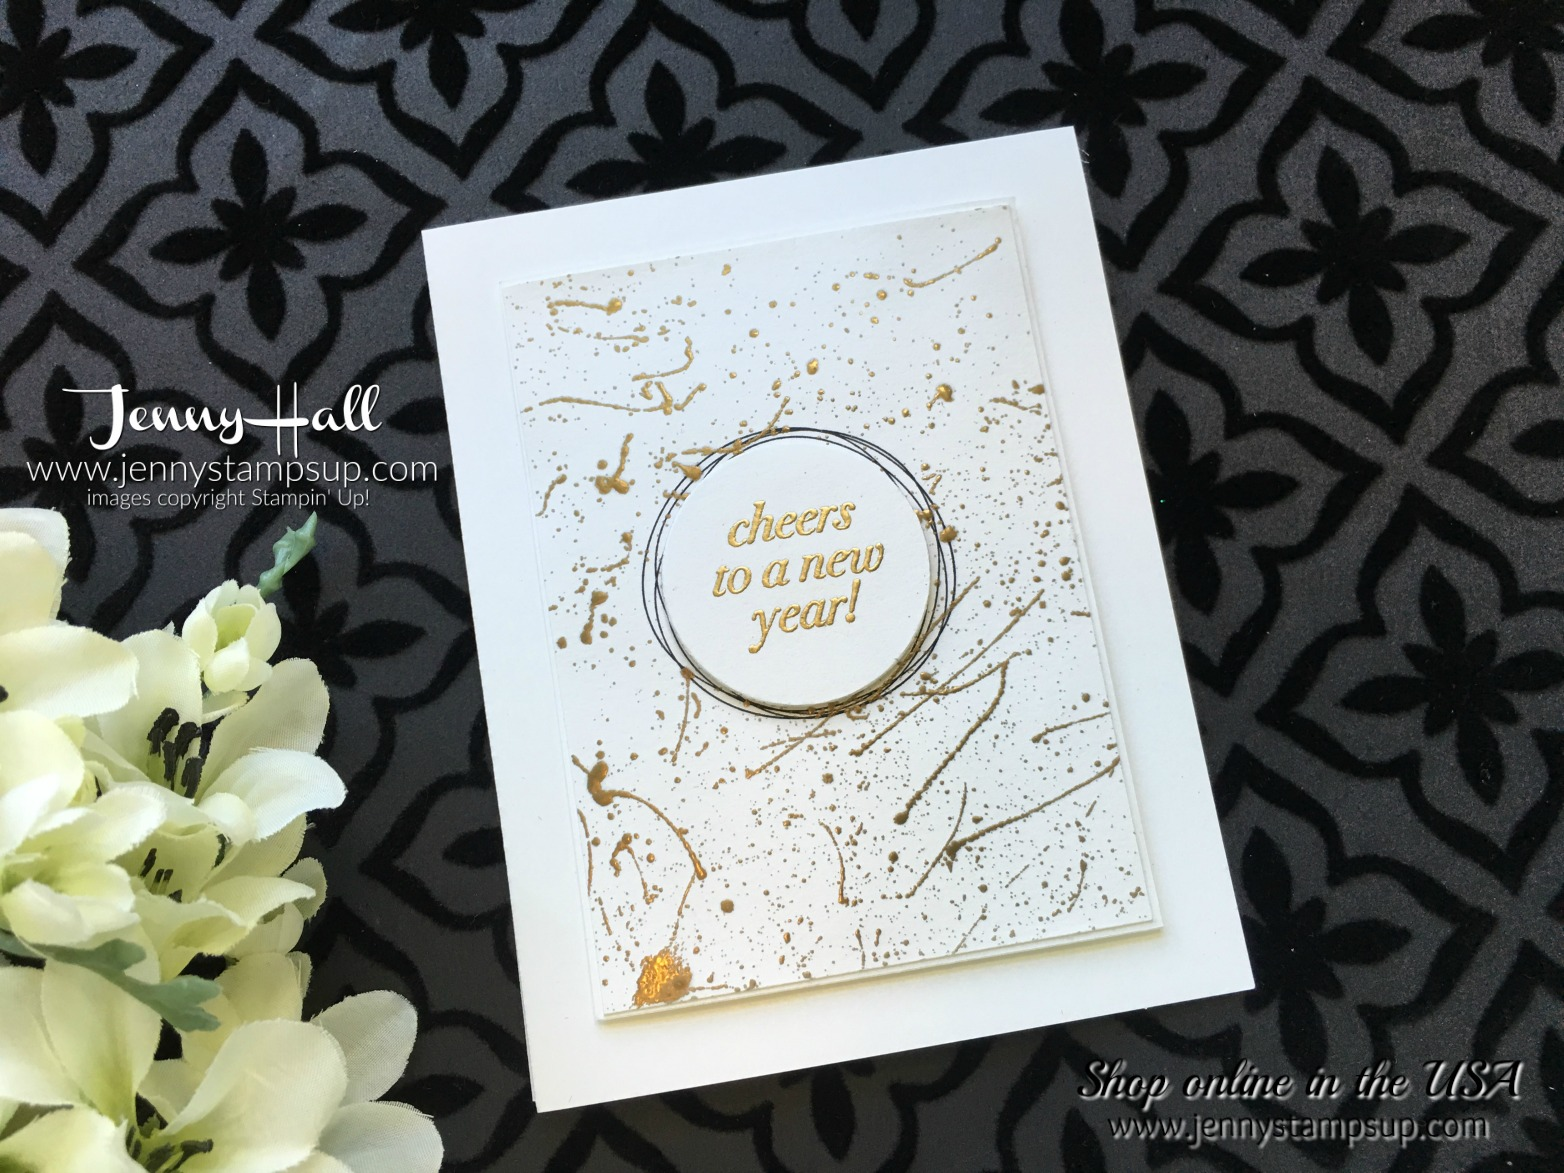 Cheers to the Year card by Jenny Hall at www.jennystampsup.com for cardmaking, scrapbooking, video tutorials and more!